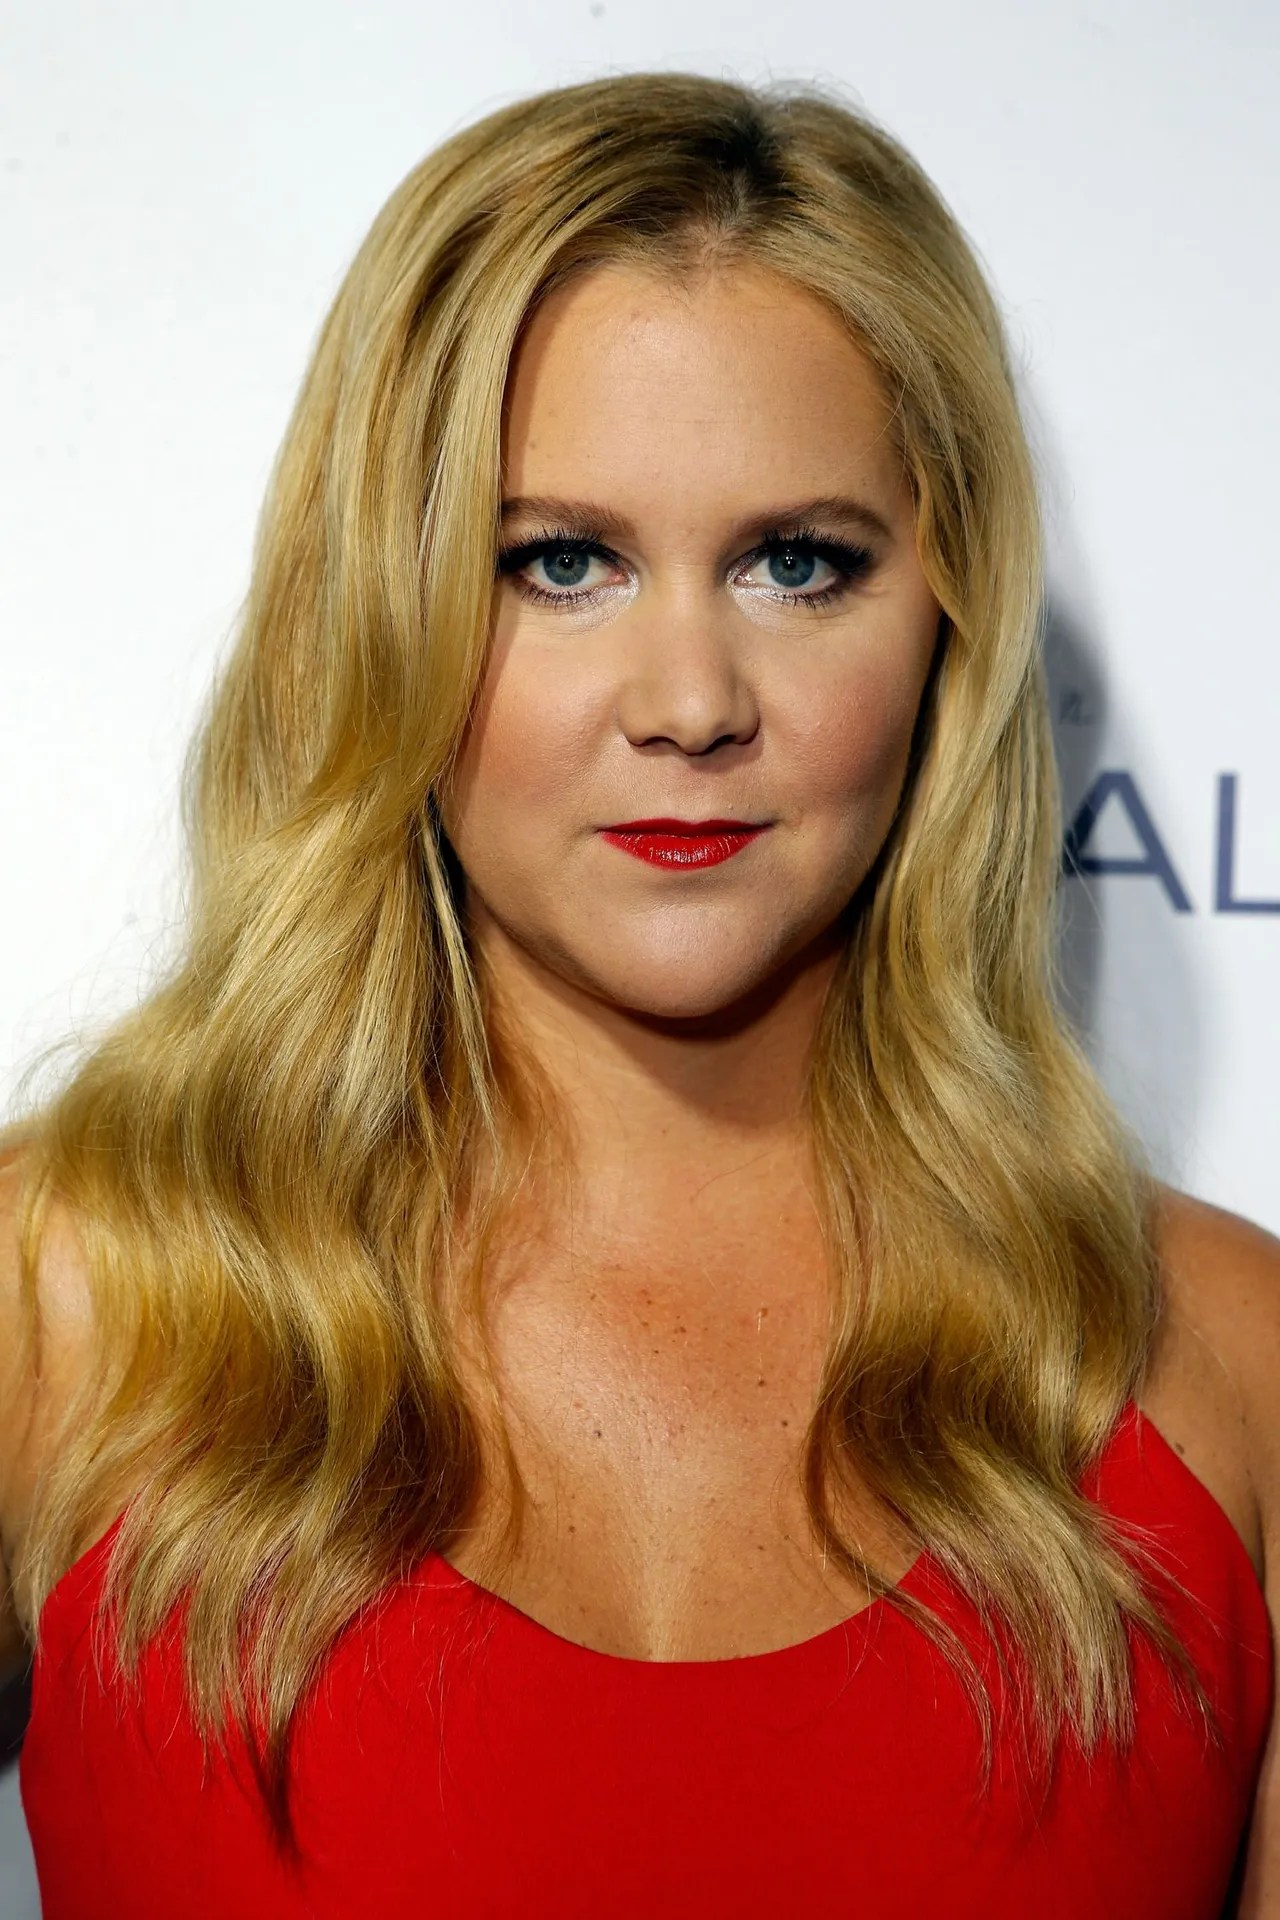 Lipstick Color Is Red Amy Schumer Wore Red Lipstick For The First Time And It